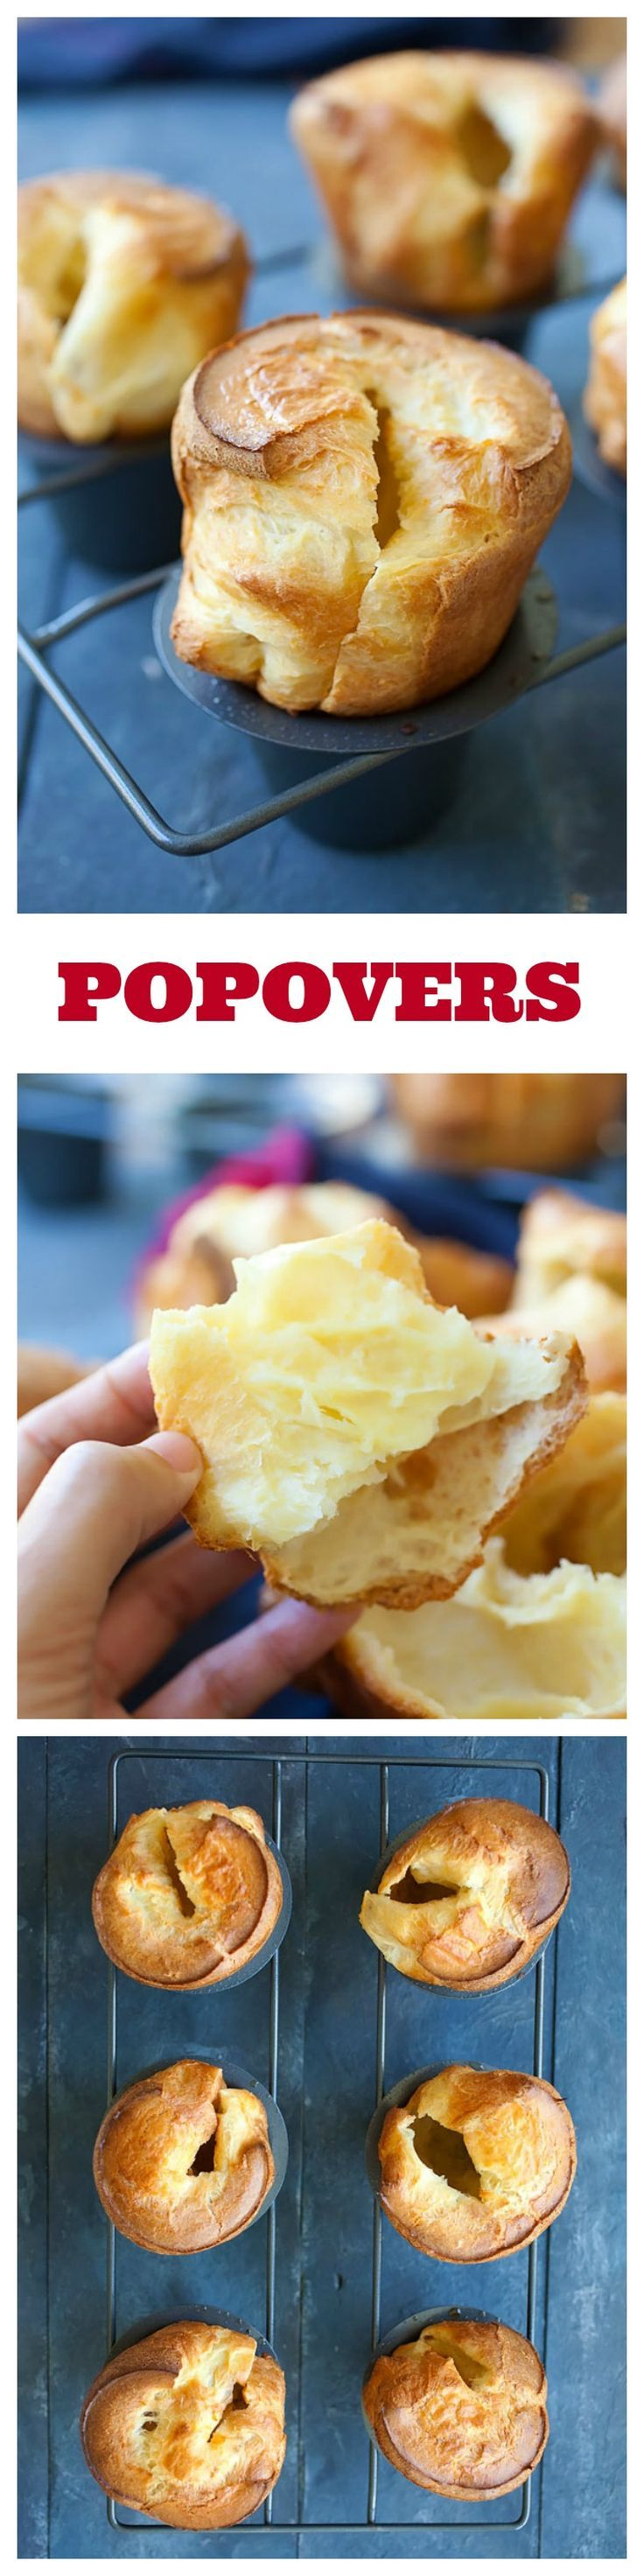 Popovers – American version of Yorkshire pudding. Popovers are tender, airy, hollow rolls surrounded by burnished crust, so yummy and addictive   rasamalaysia.com